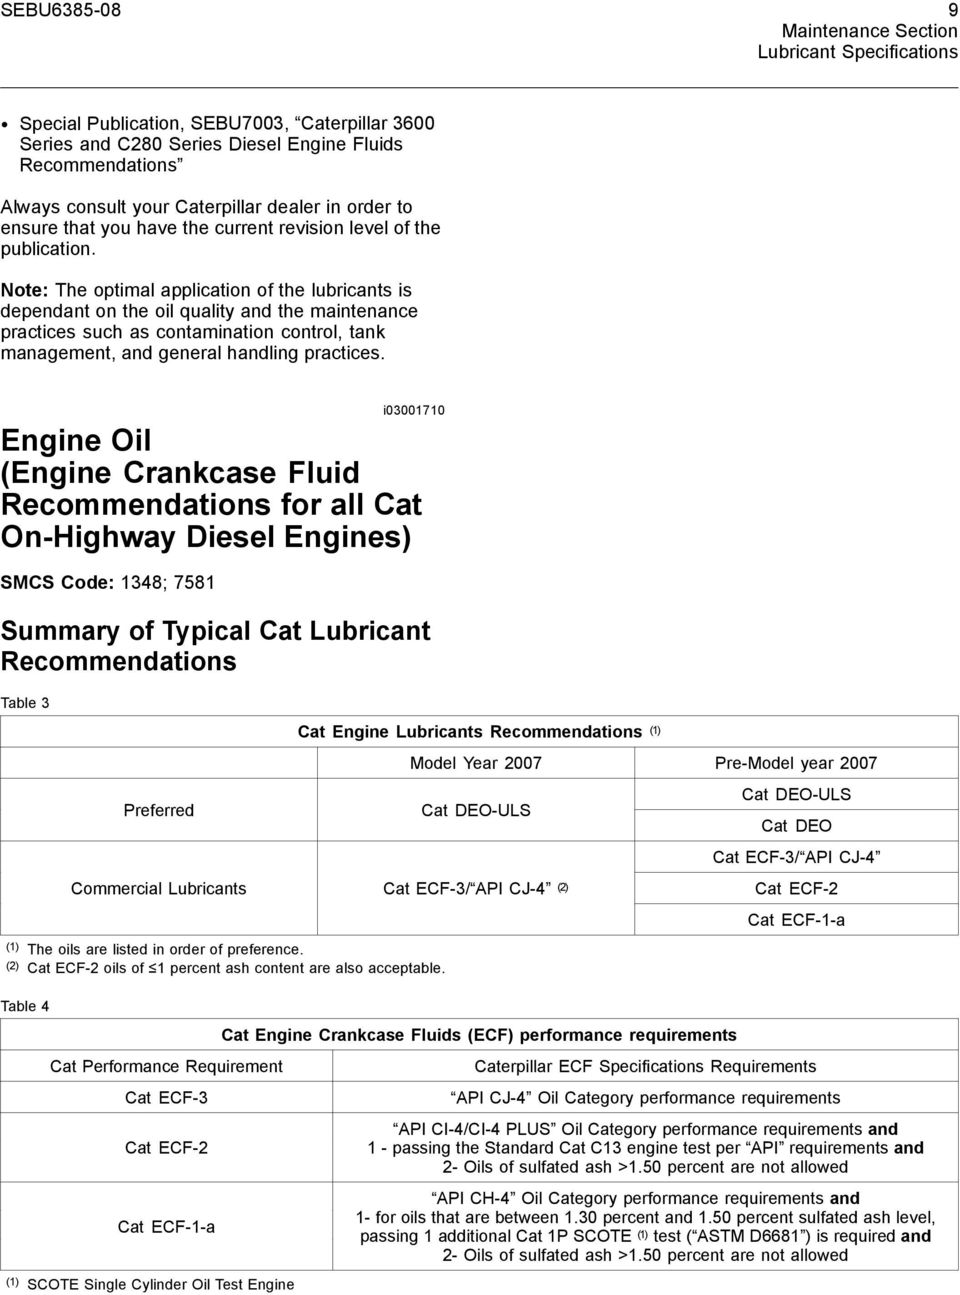 Caterpillar On-Highway Diesel Engine Fluids Recommendations - PDF